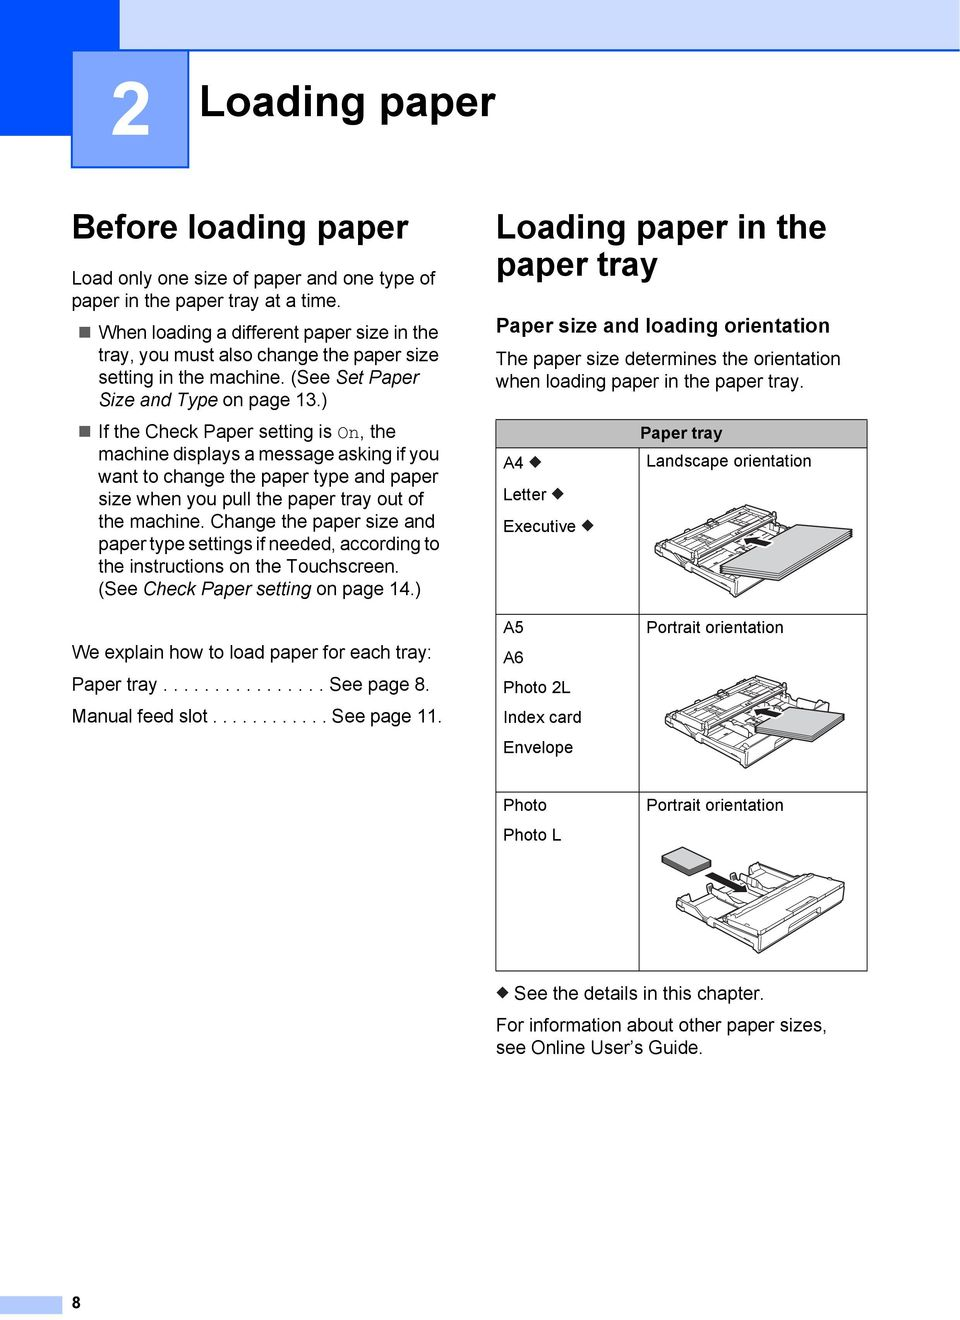 ) If the Check Paper setting is On, the machine displays a message asking if you want to change the paper type and paper size when you pull the paper tray out of the machine.